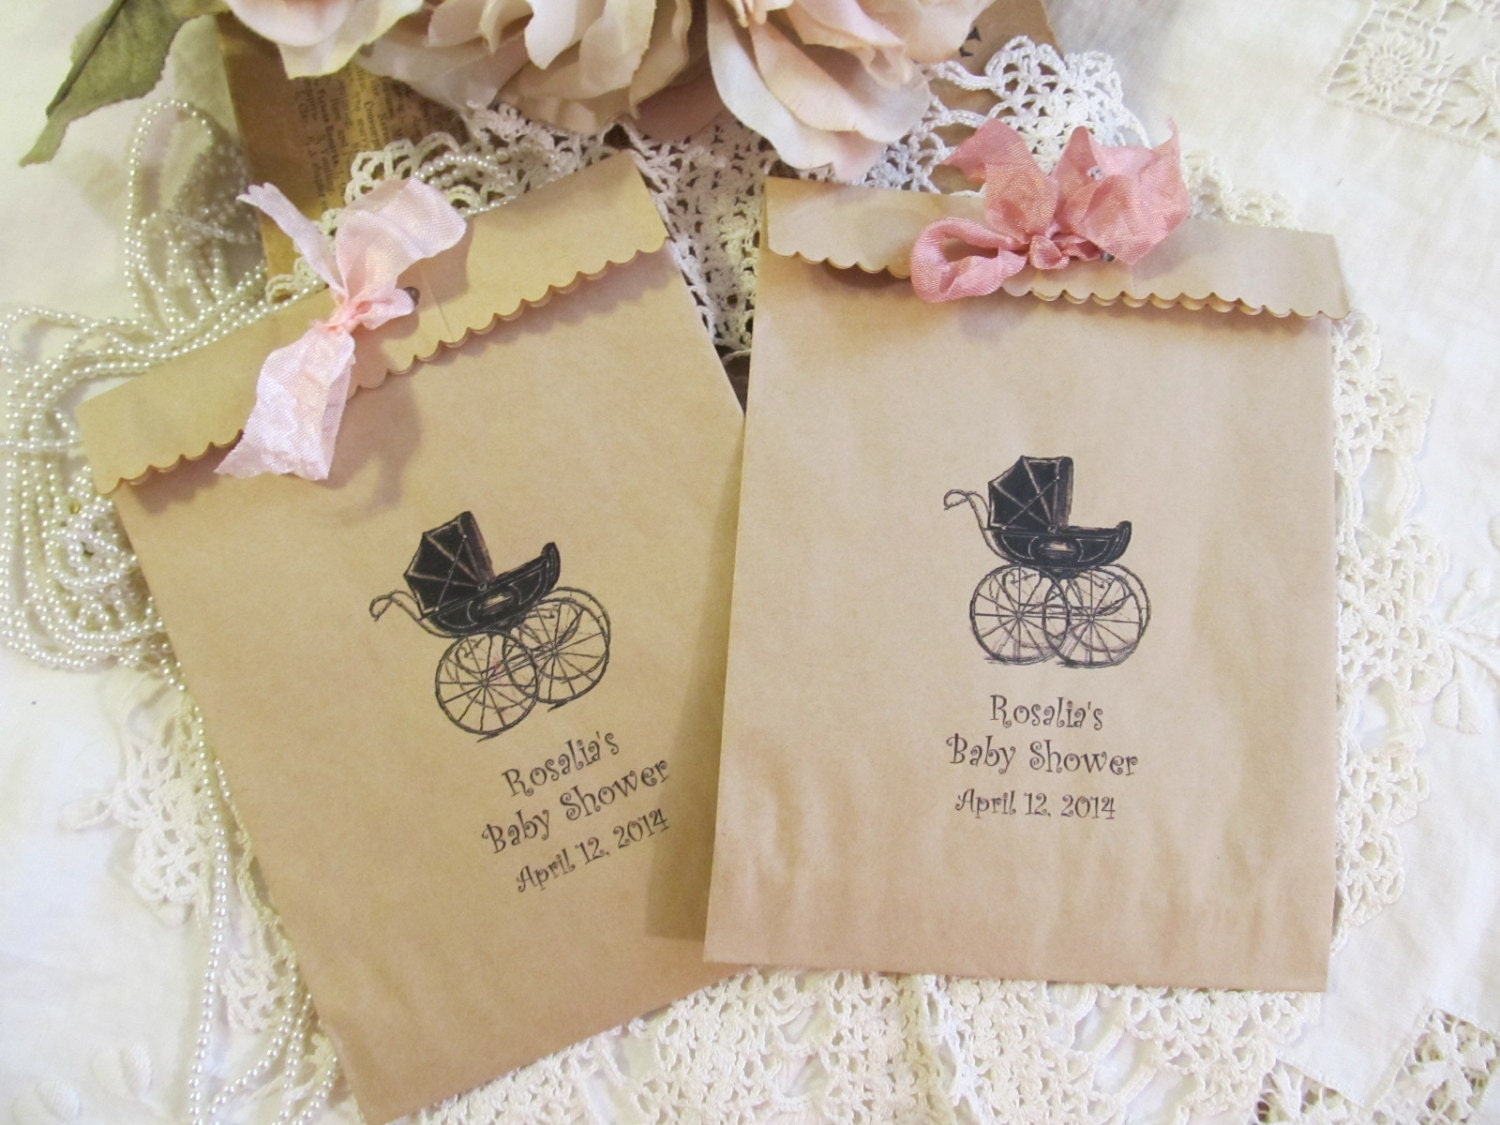 baby shower favor bags w ribbons vintage carriage stroller